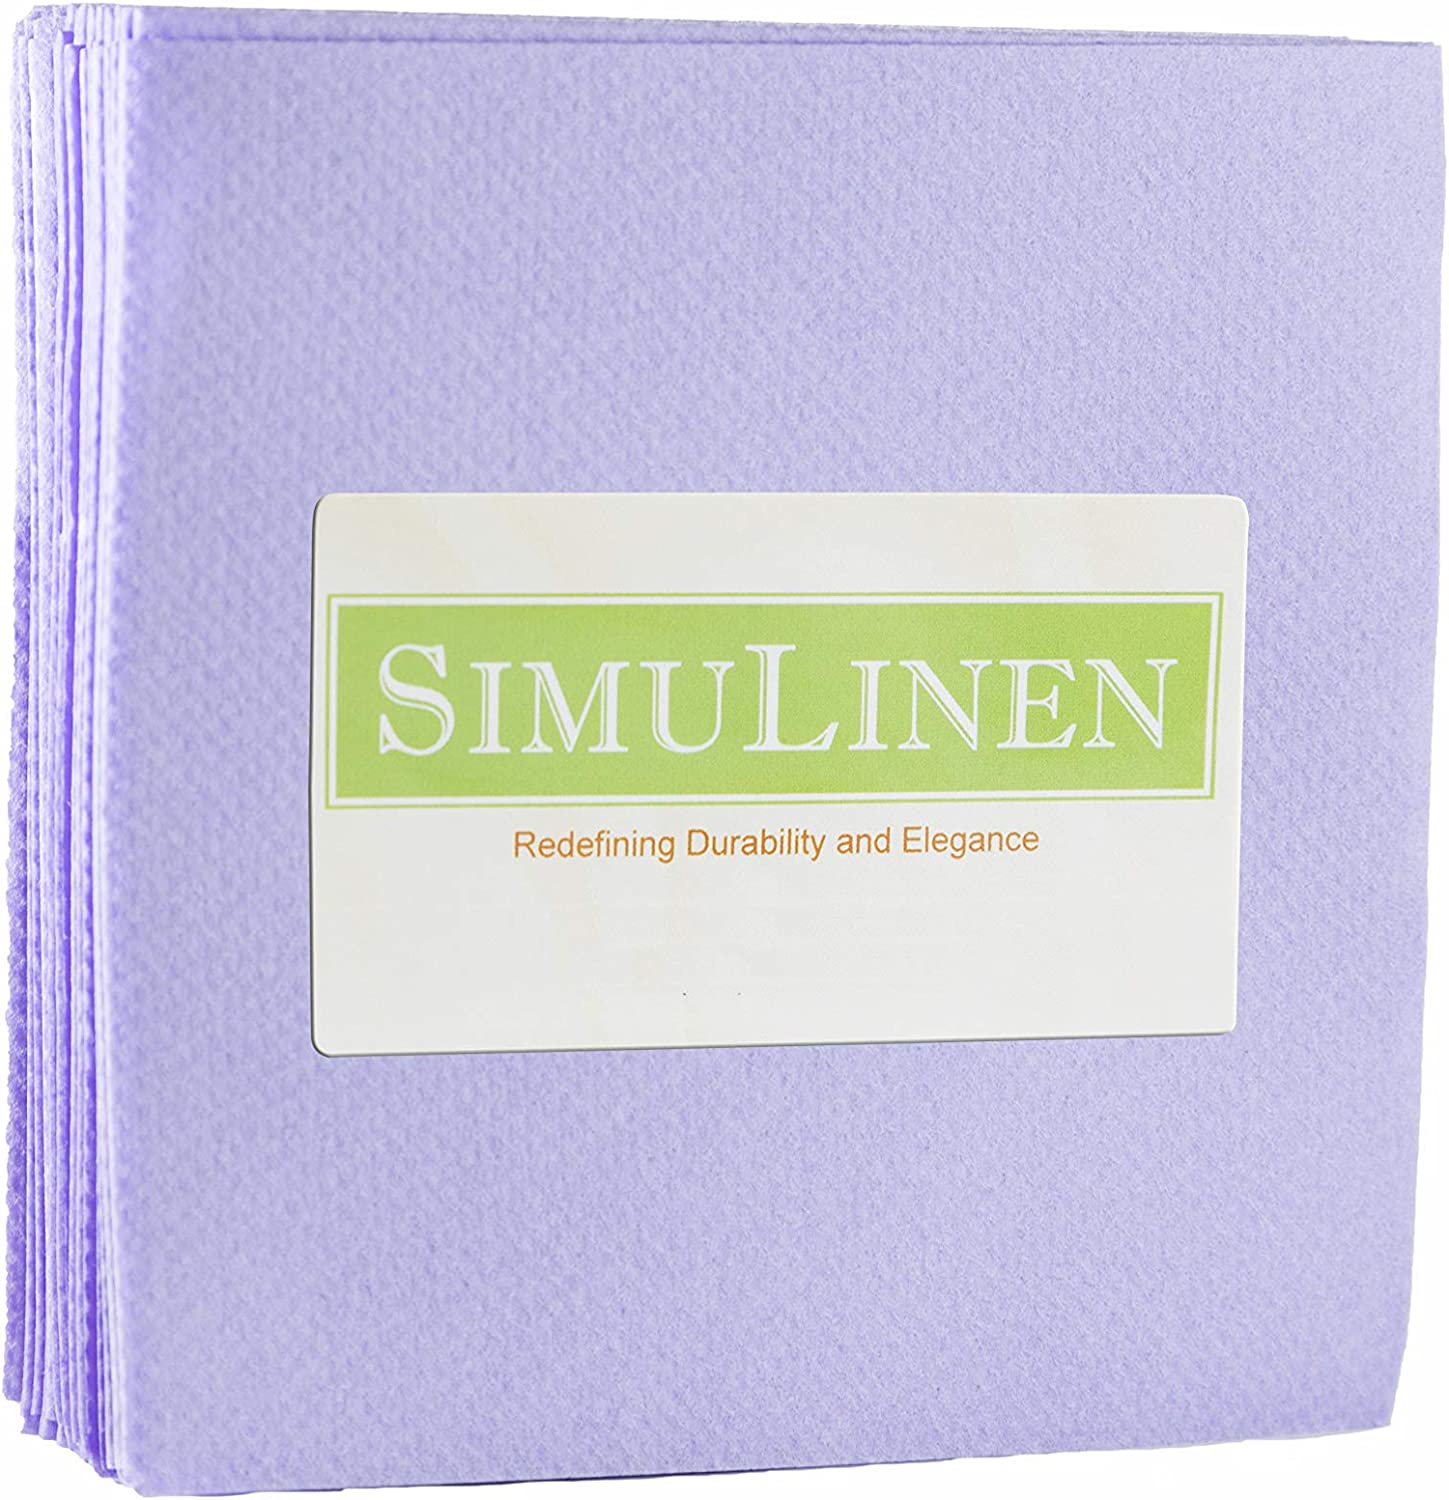 SimuLinen Colored Cocktail/Beverage Napkins - Lavender - Decorative, Absorbent, Cloth Like & Disposable - (Pack of 25)